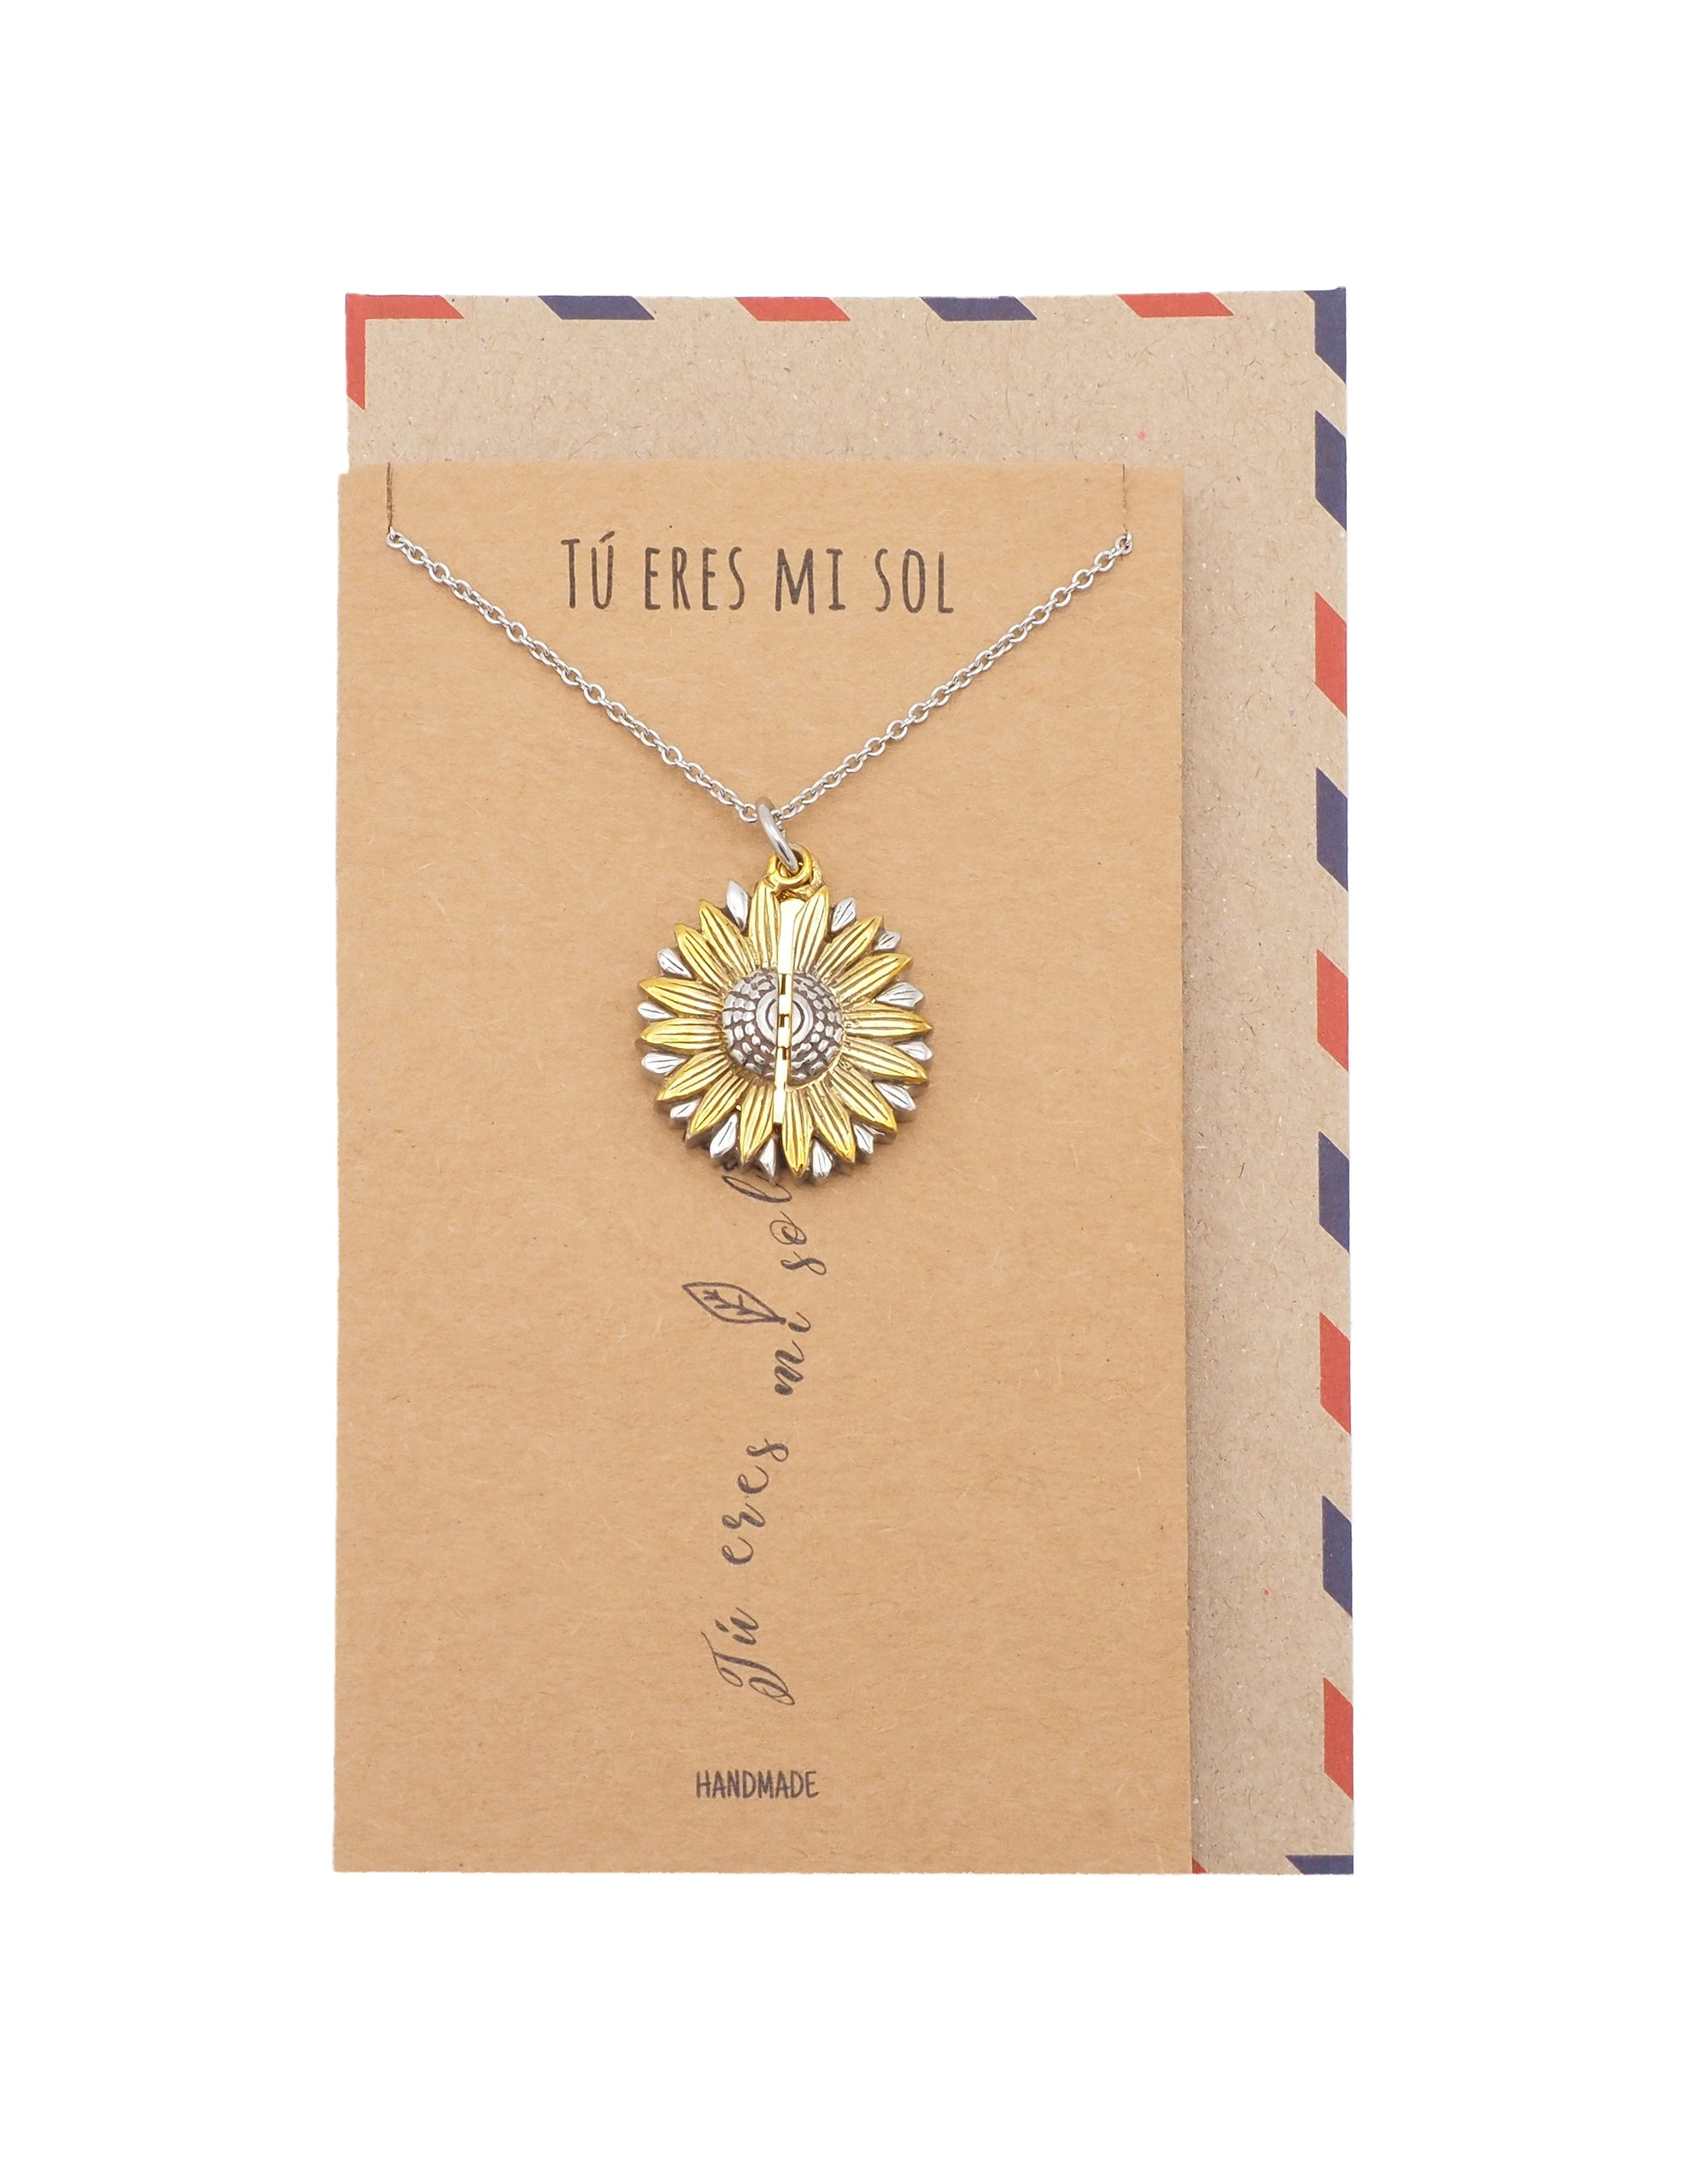 Adalee Tú Eres Mi Sol Necklace, Sunflower Locket Pendant, Spanish Engraved Gifts Jewelry Greeting Cards